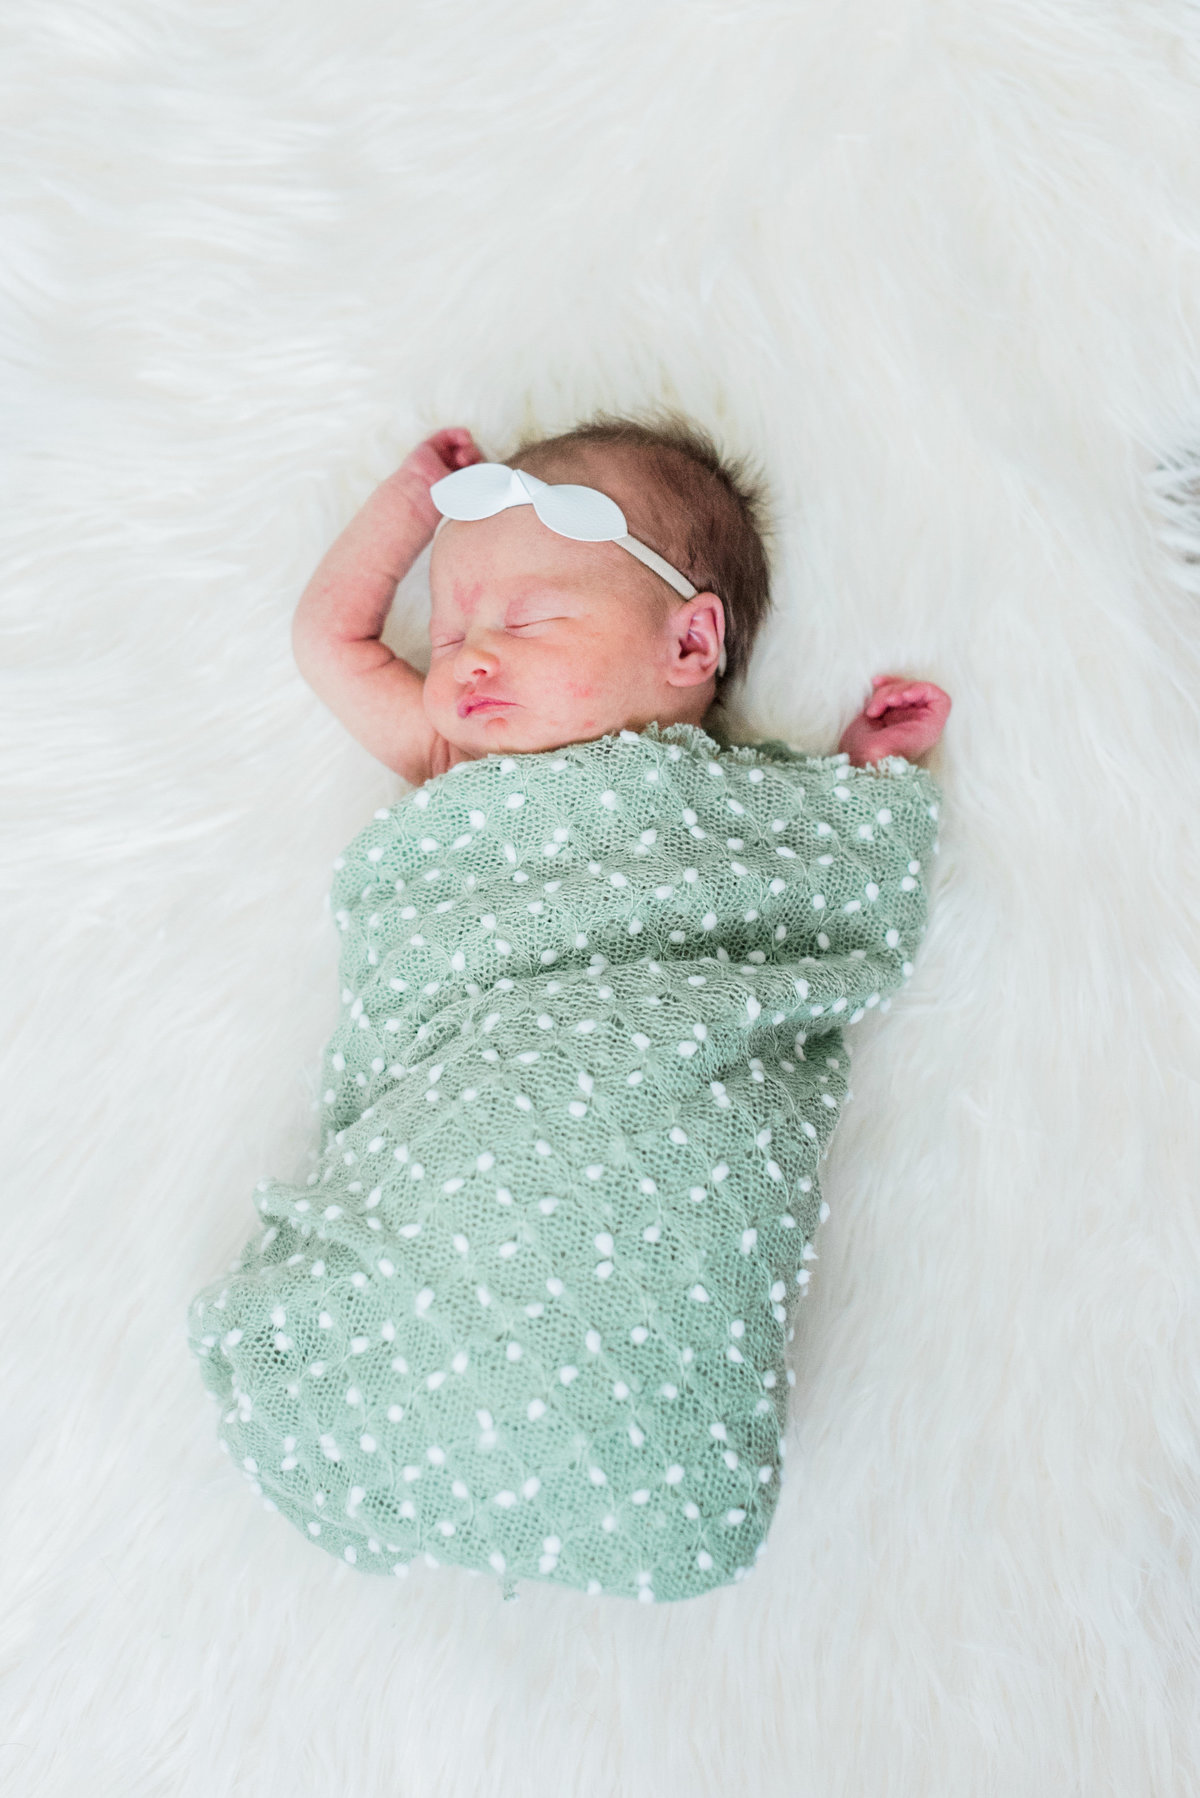 wake forest, nc newborn photo